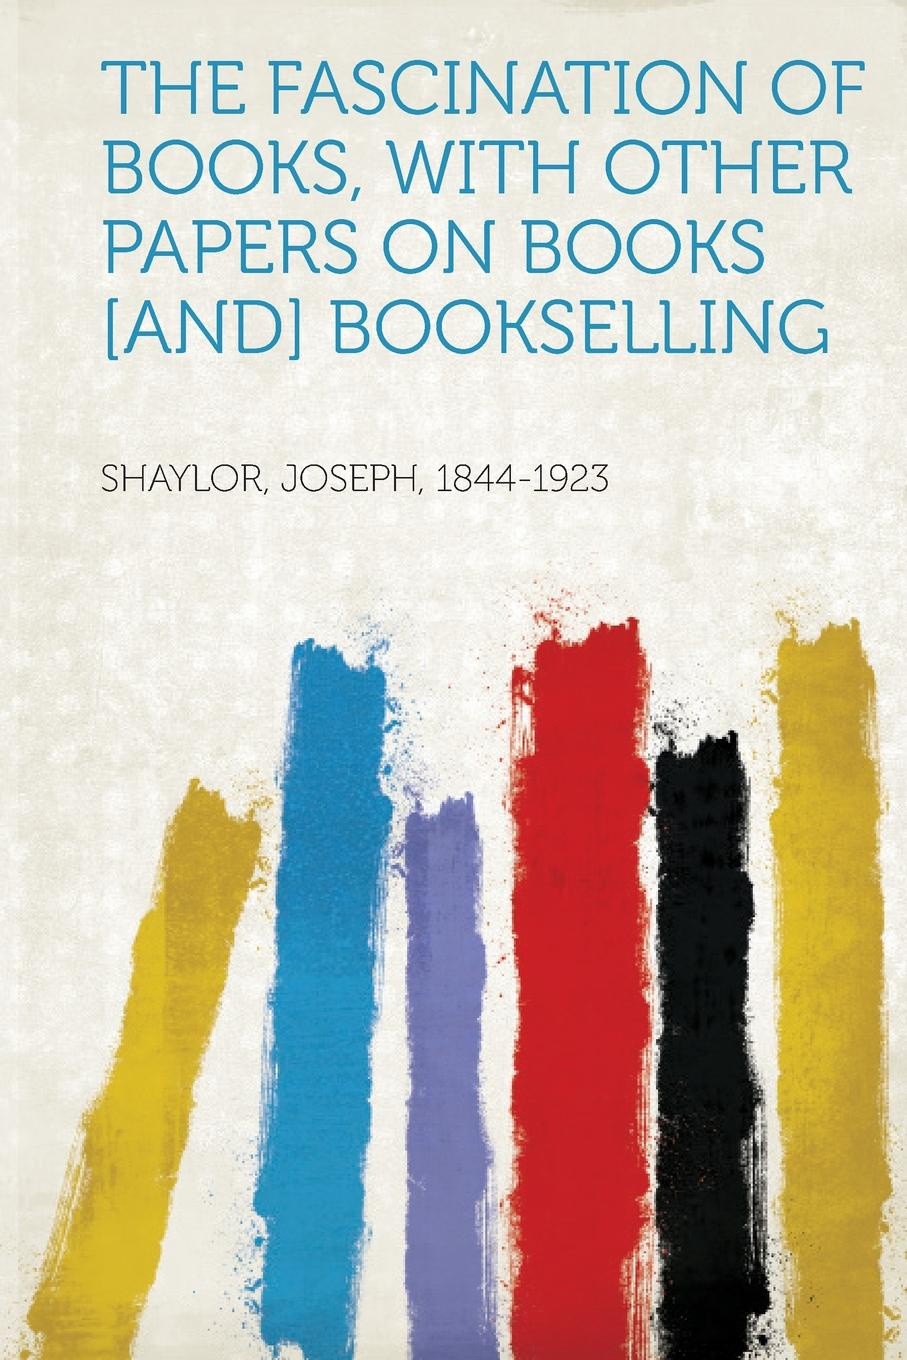 Joseph Shaylor The Fascination of Books, with Other Papers on Books .And. Bookselling